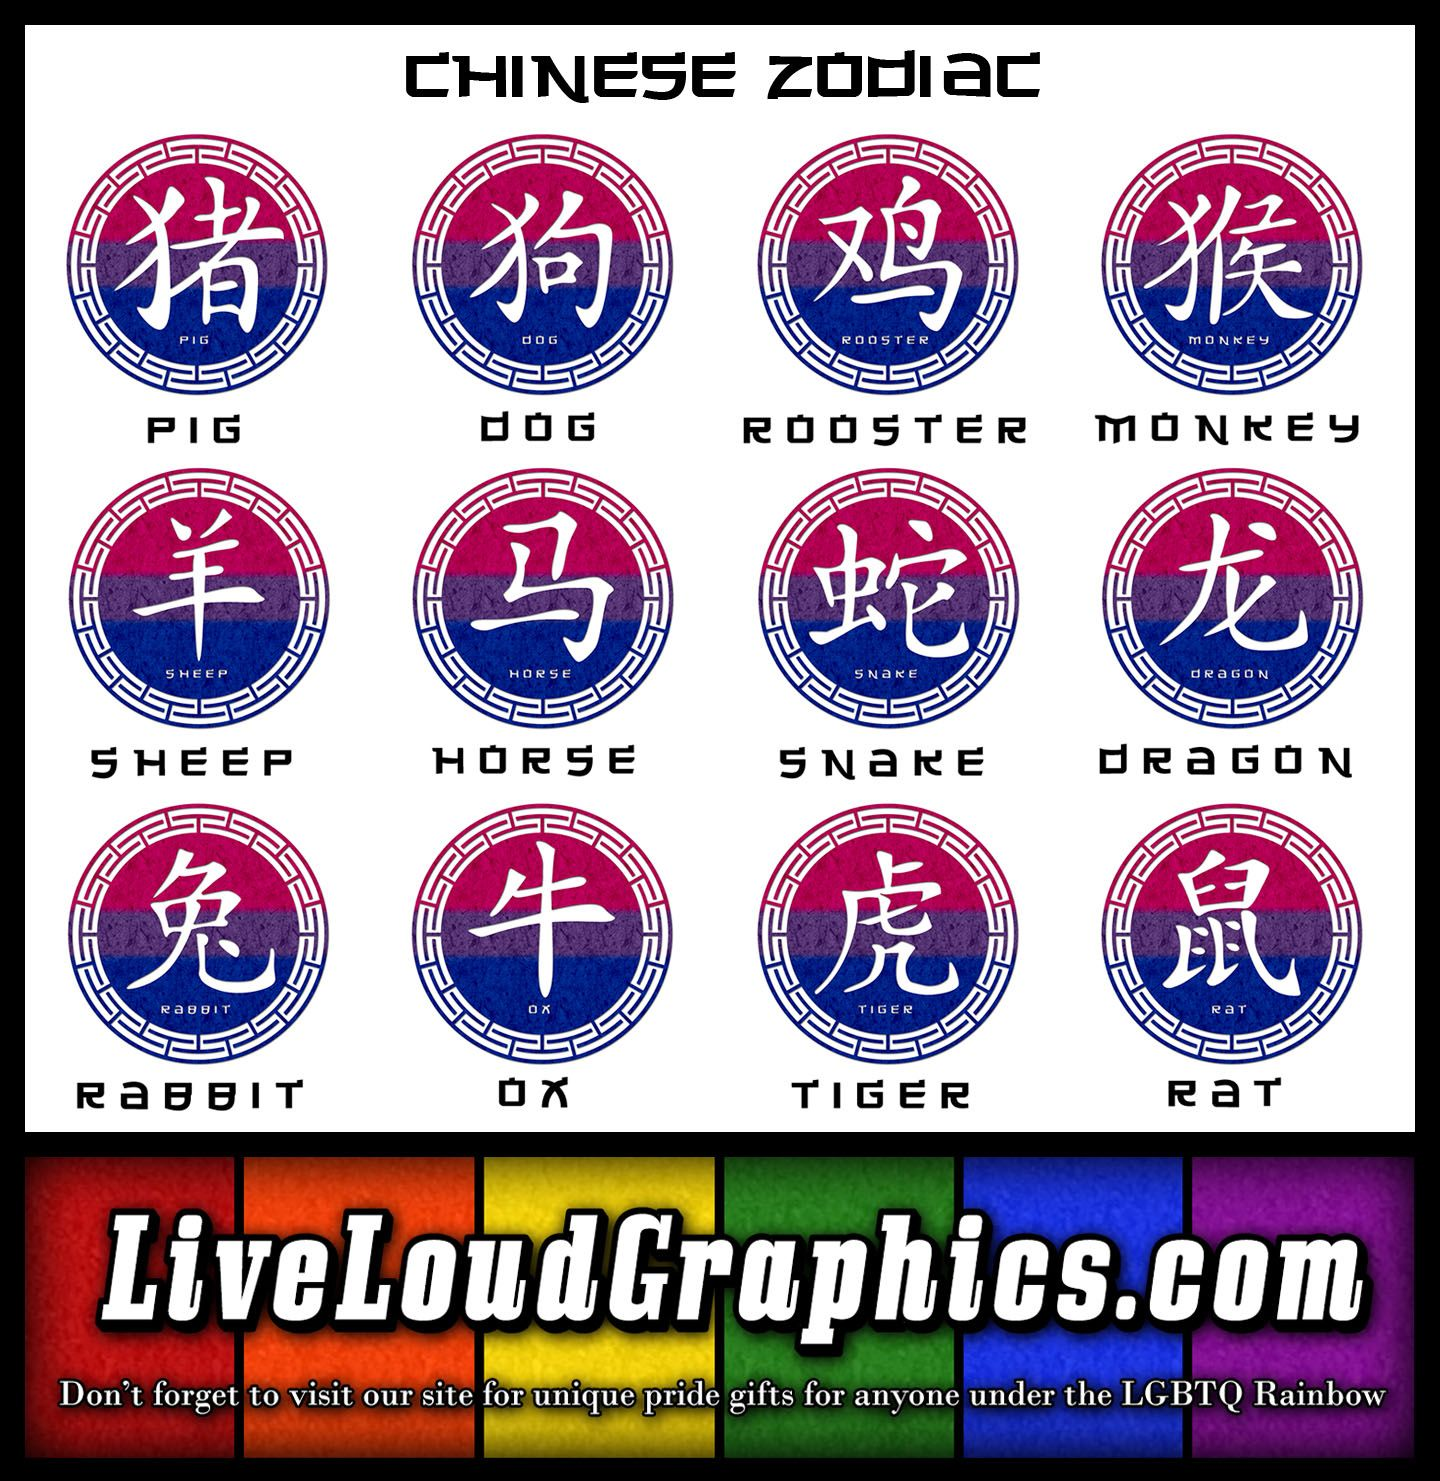 Celebrate Your Chinese Zodiac And Bisexual Pride With These Pride